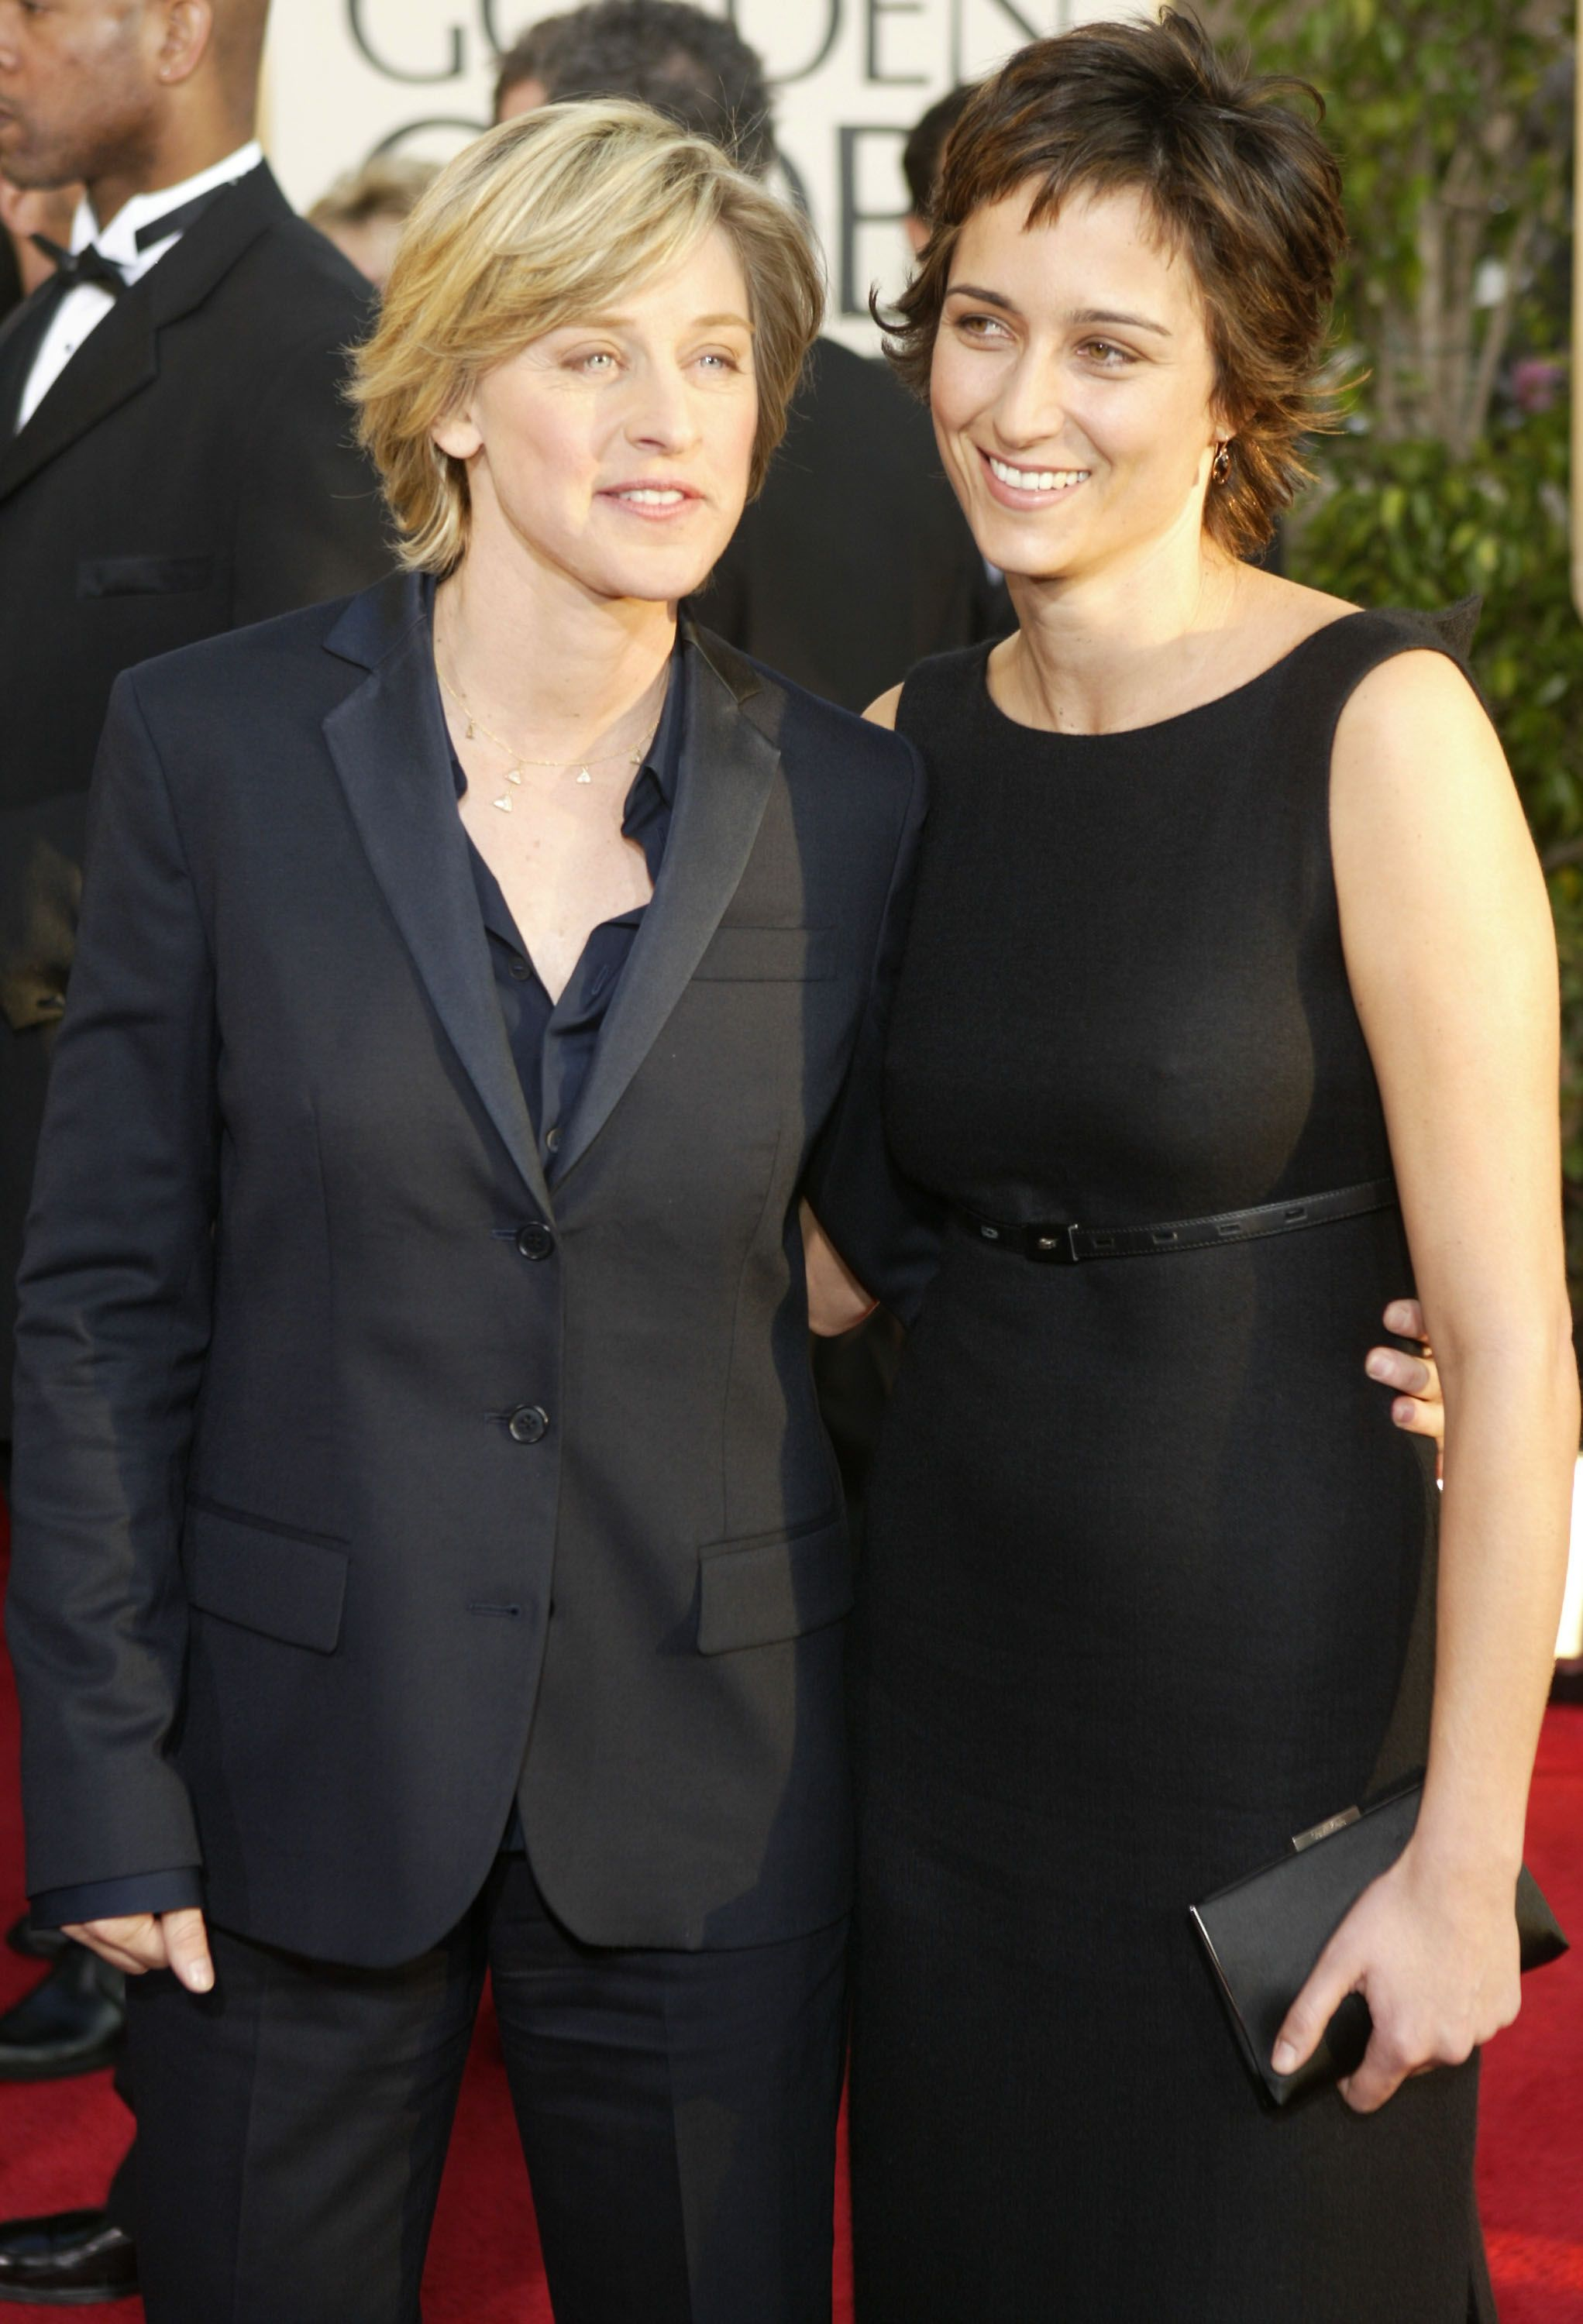 Ellen DeGeneres and Alexandra Hedison at the 61st Annual Golden Globe Awards in 2004   Source: Getty Images